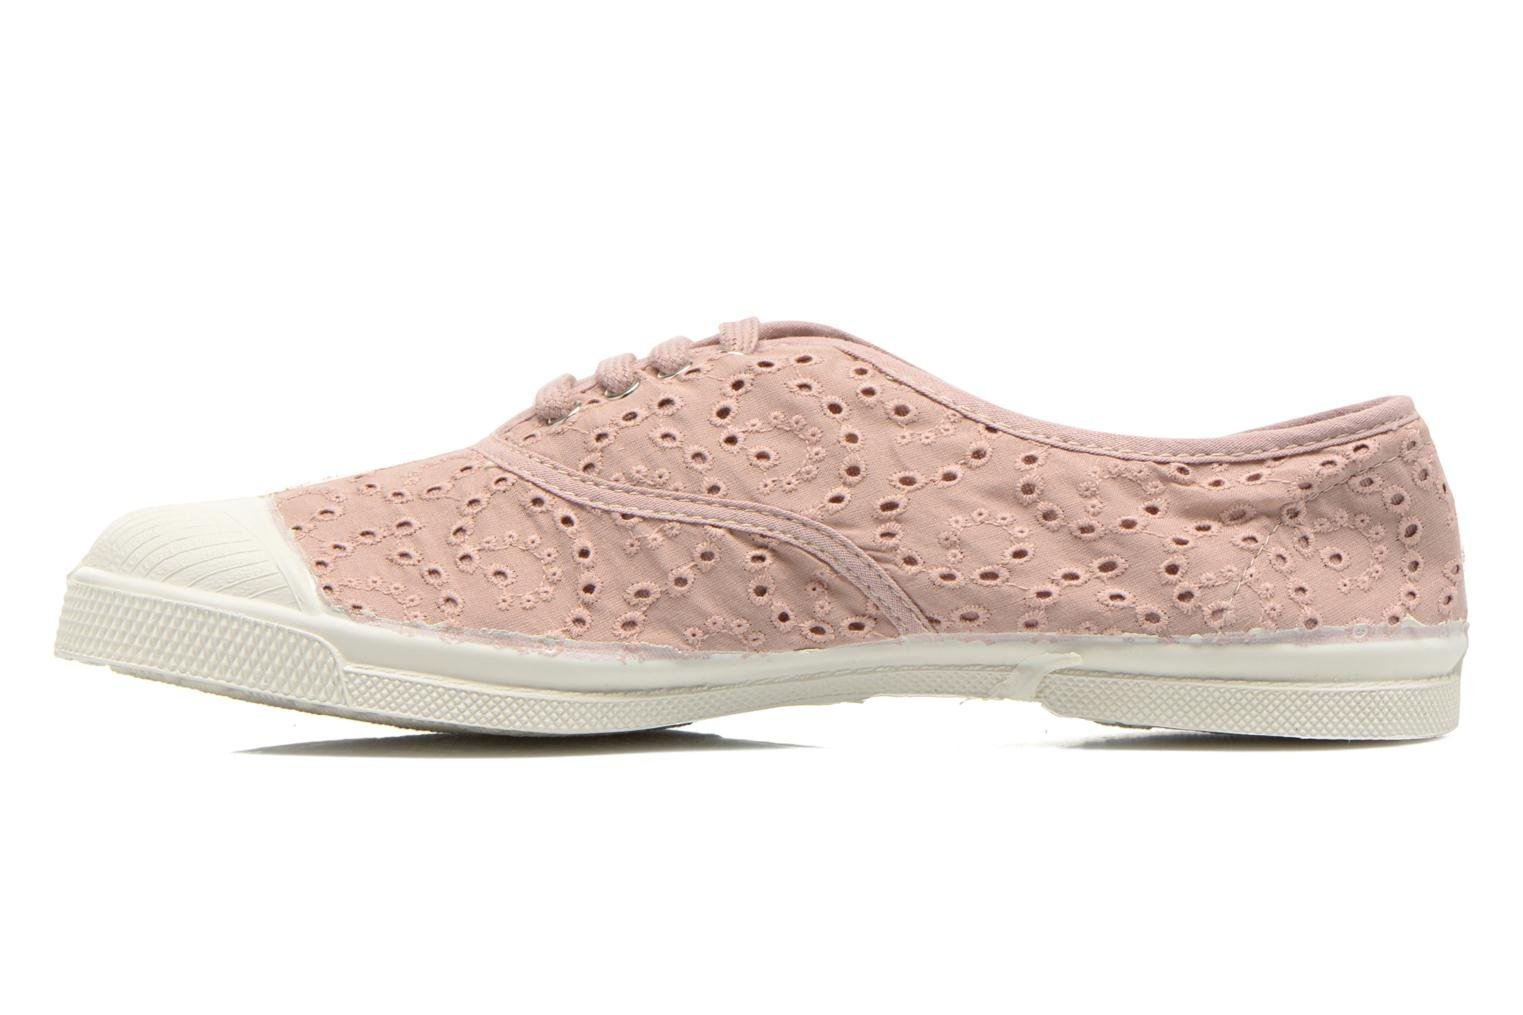 Tennis Broderie Anglaise Vieux rose